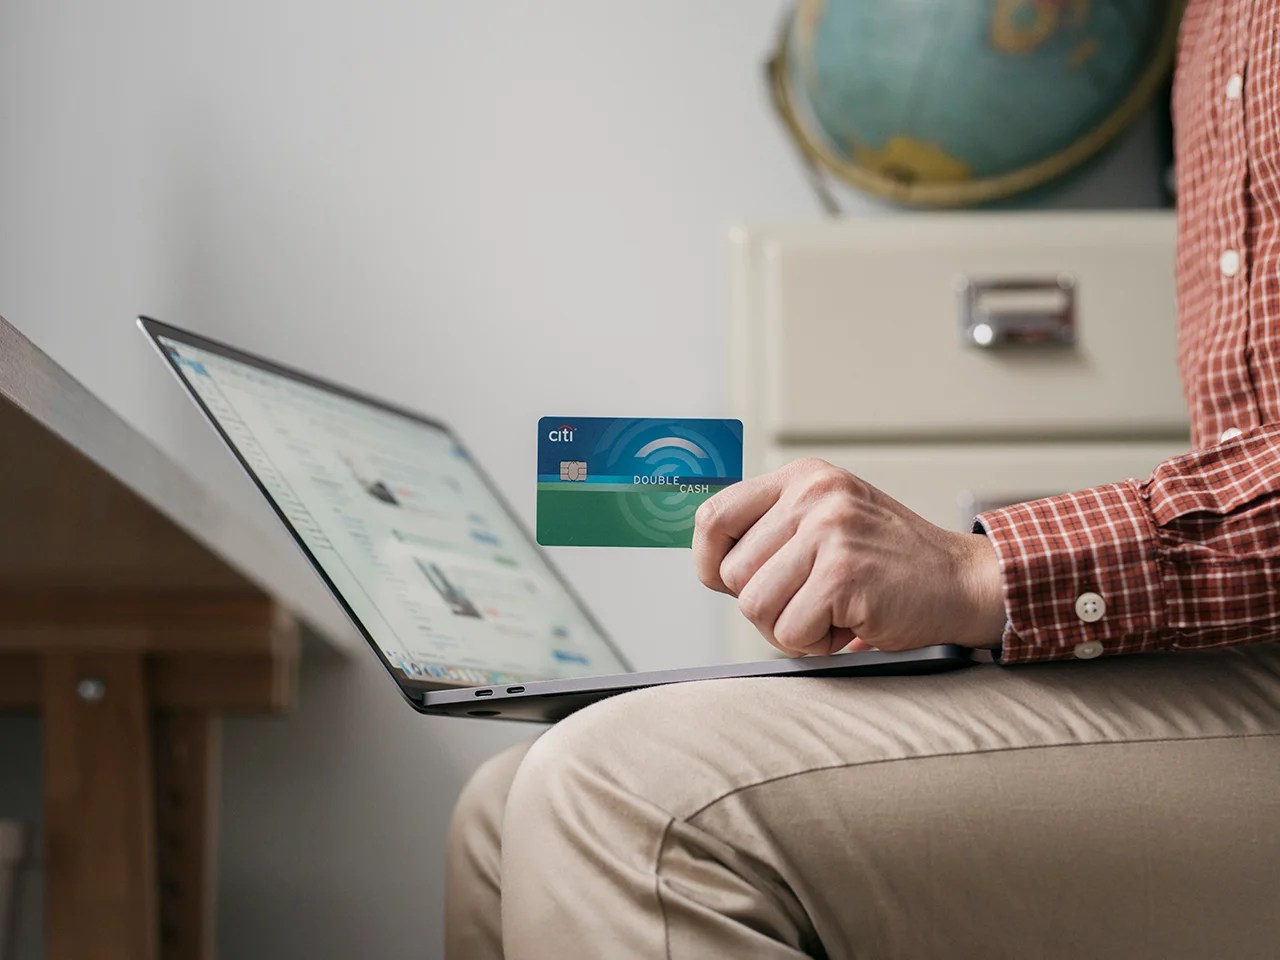 Get a $30 Statement Credit After Making 3 $30 Amazon Purchases With Select Citi Cards